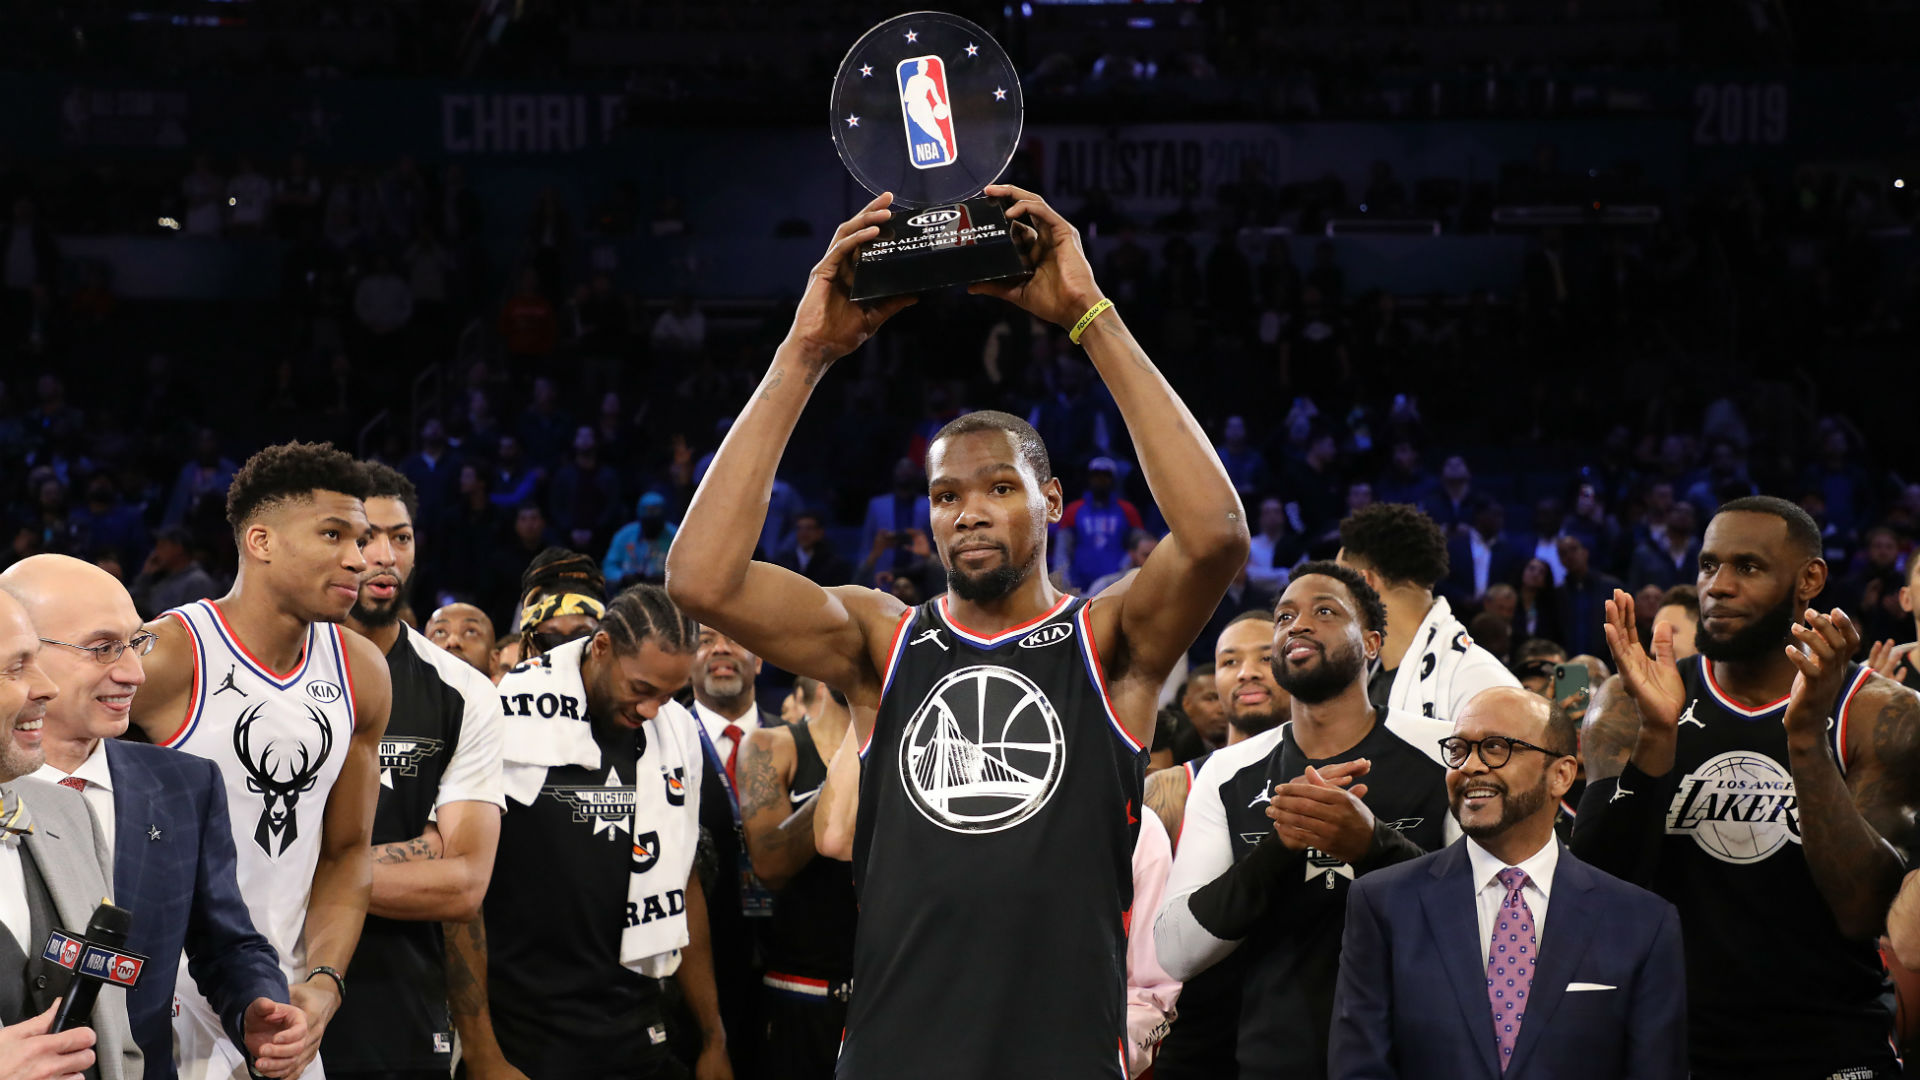 Kevin Durant wants more after 2nd All-Star MVP: 'I'll try to keep racking them up'